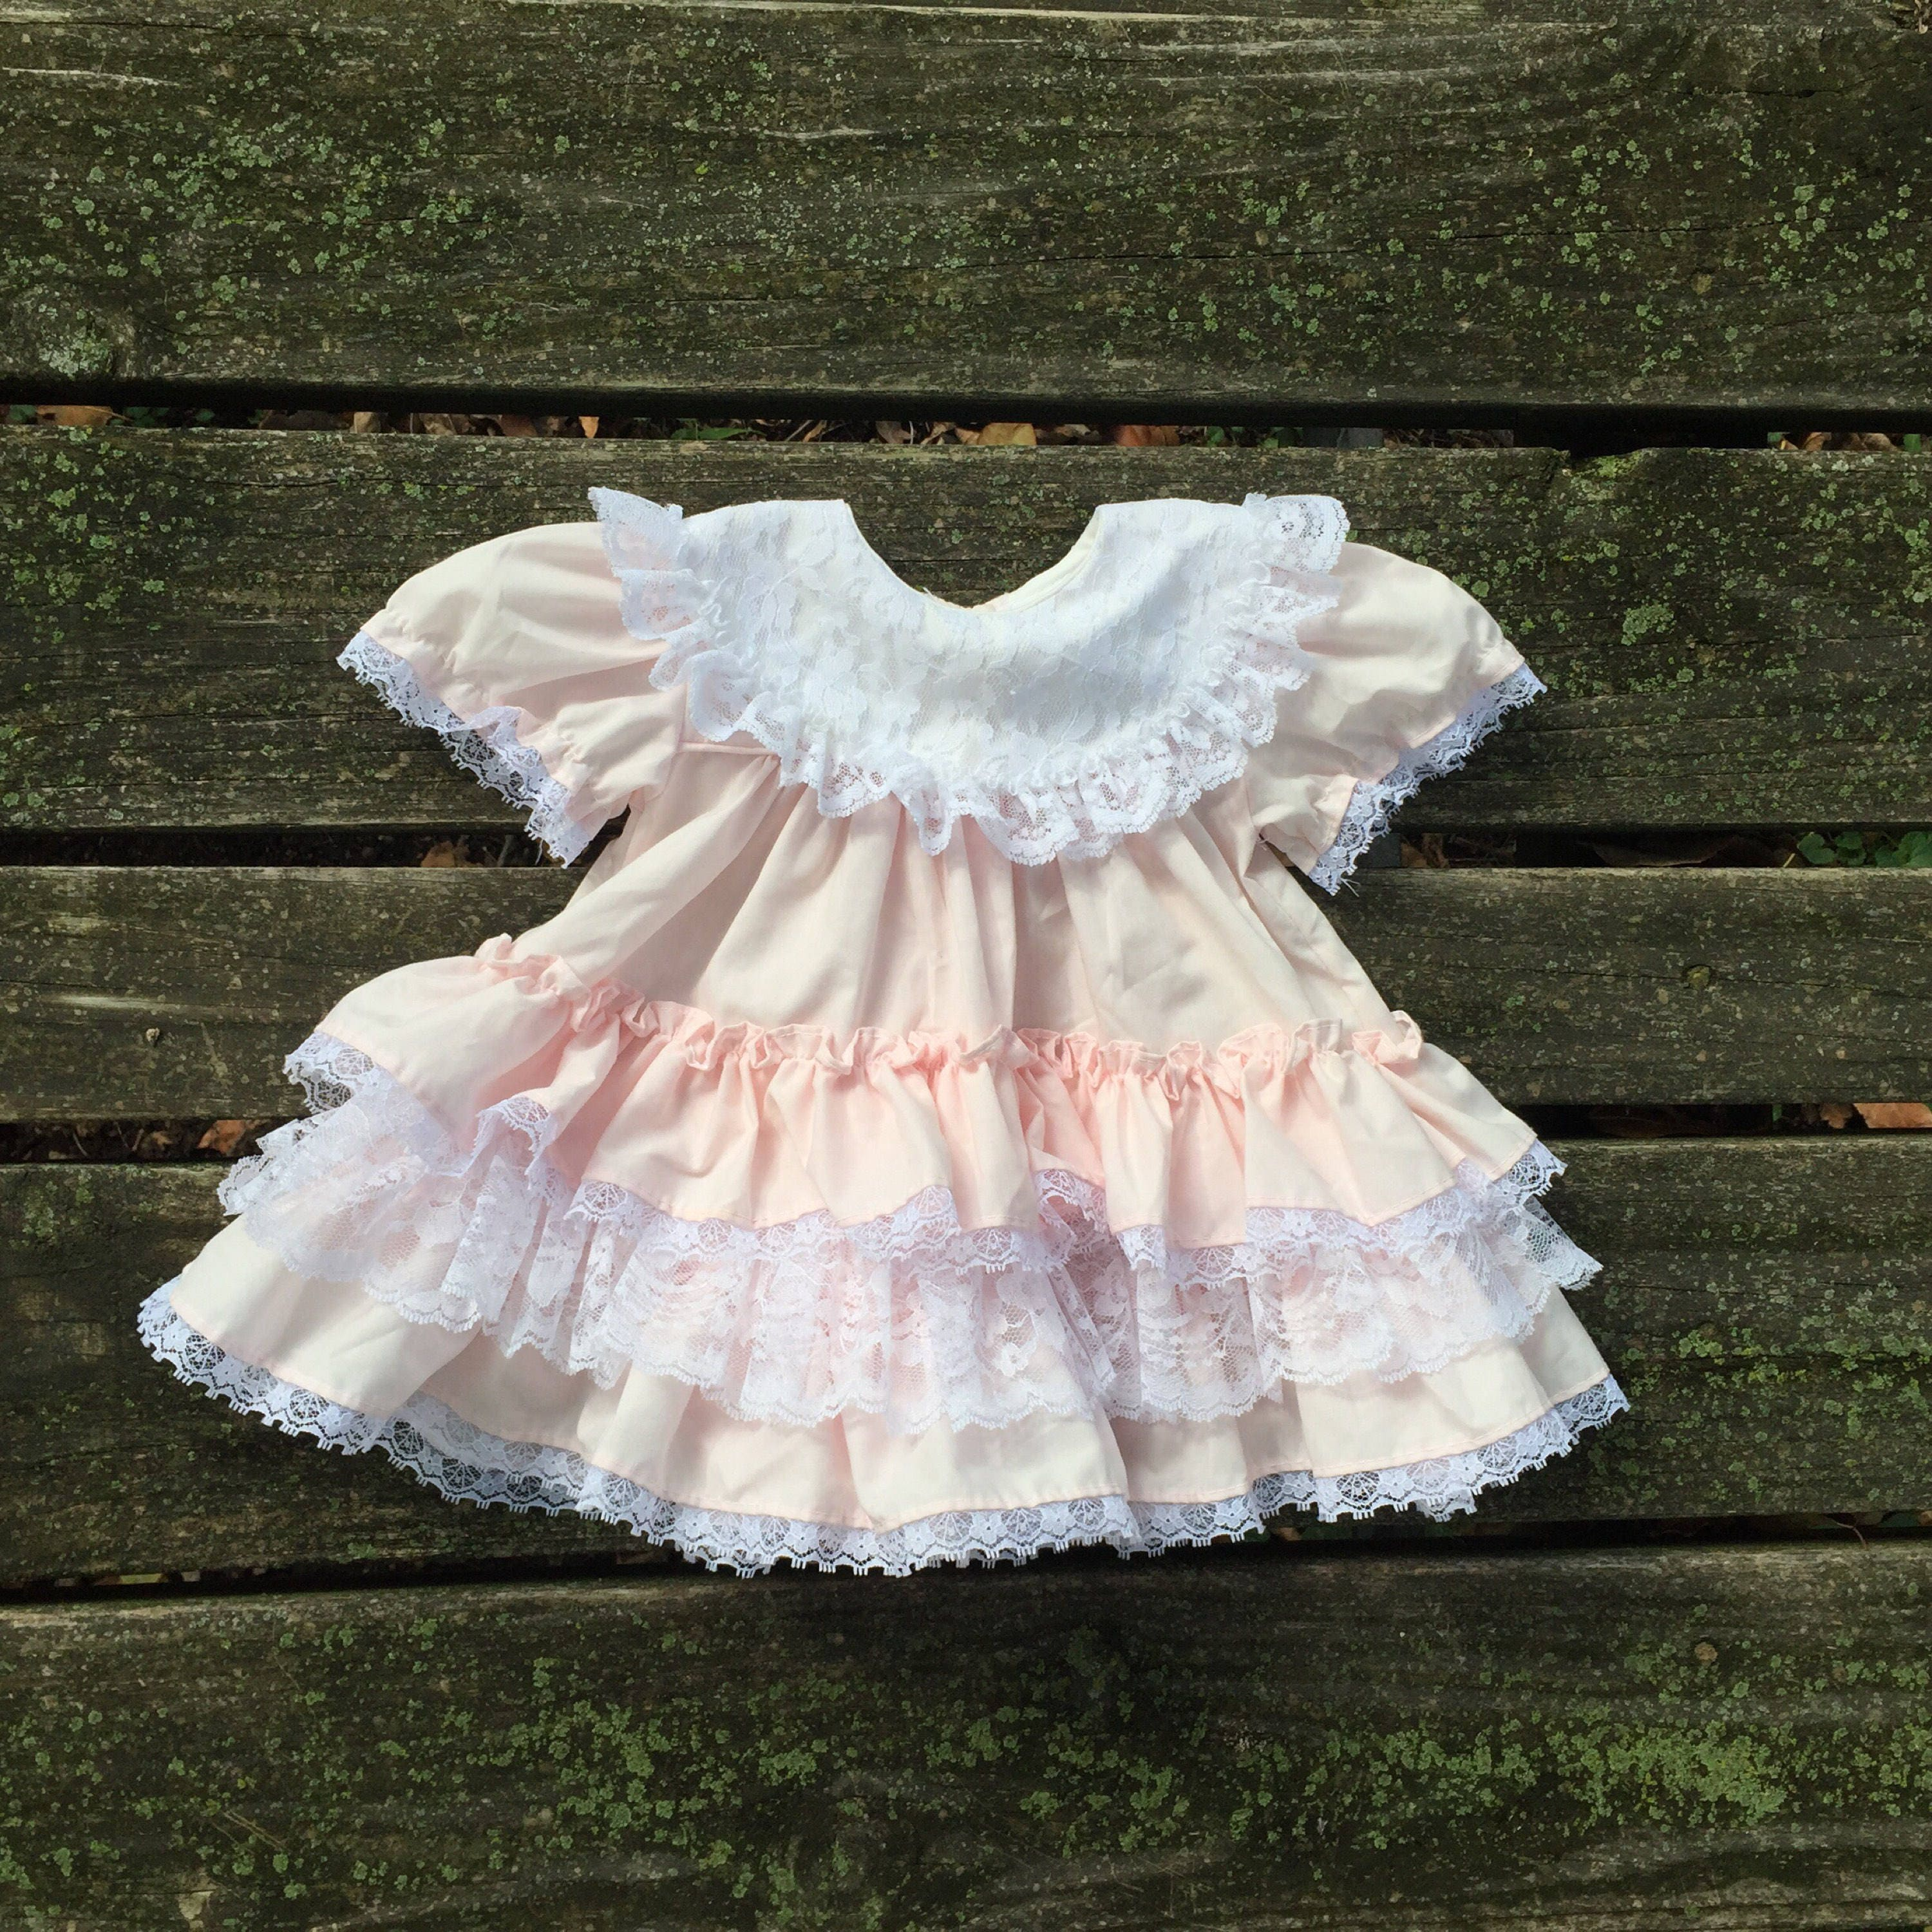 Vintage 6 Months Dress Collared Pink White Lace Ruffle Fancy